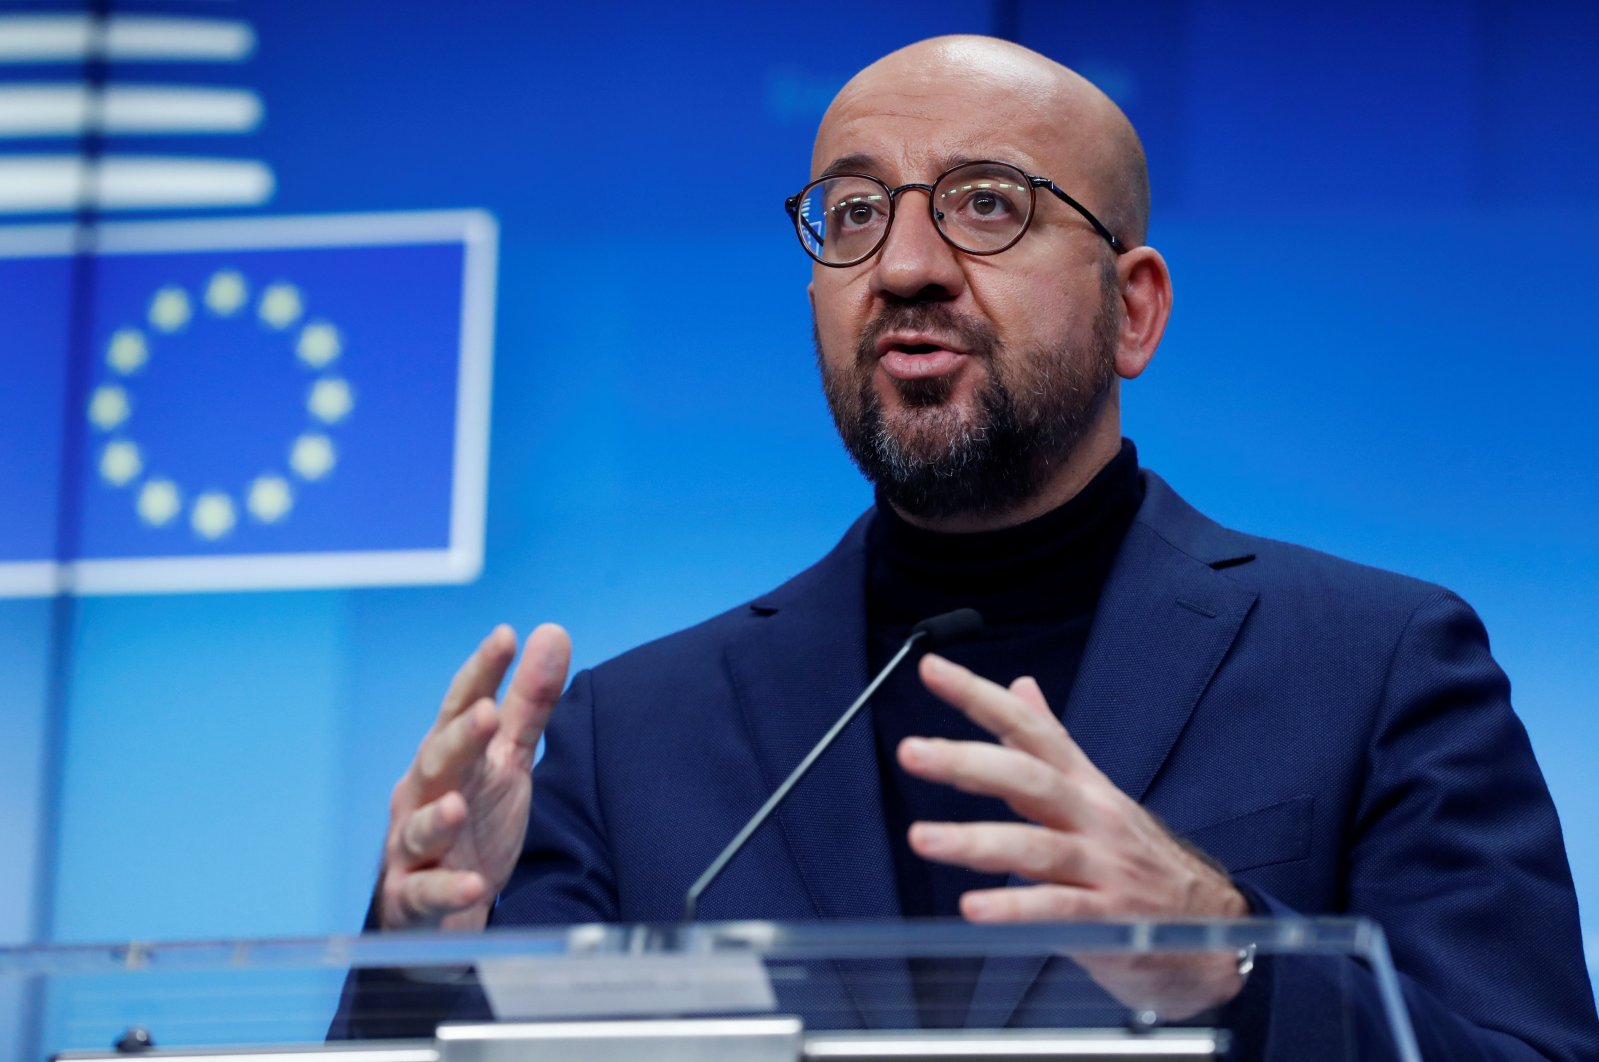 European Council President Charles Michel gives a press briefing at the end of a European Council meeting in Brussels, Belgium, Oct. 29, 2020. (AFP Photo)